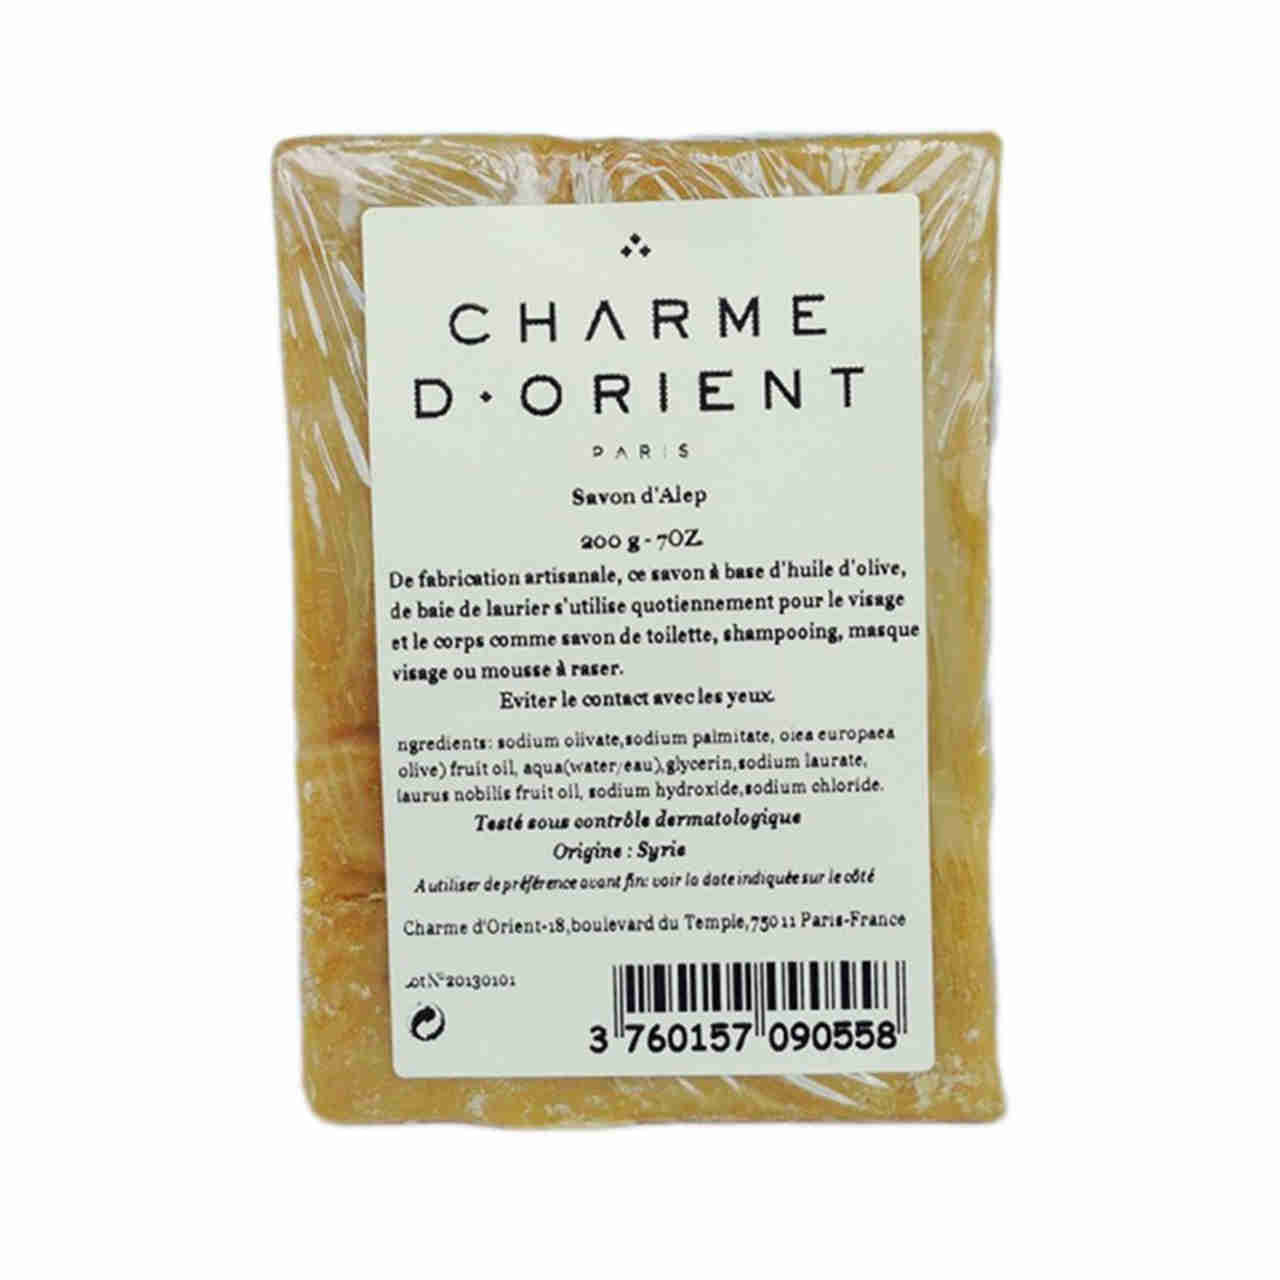 CHARME D'ORIENT Traditional Aleppo Soap Bar